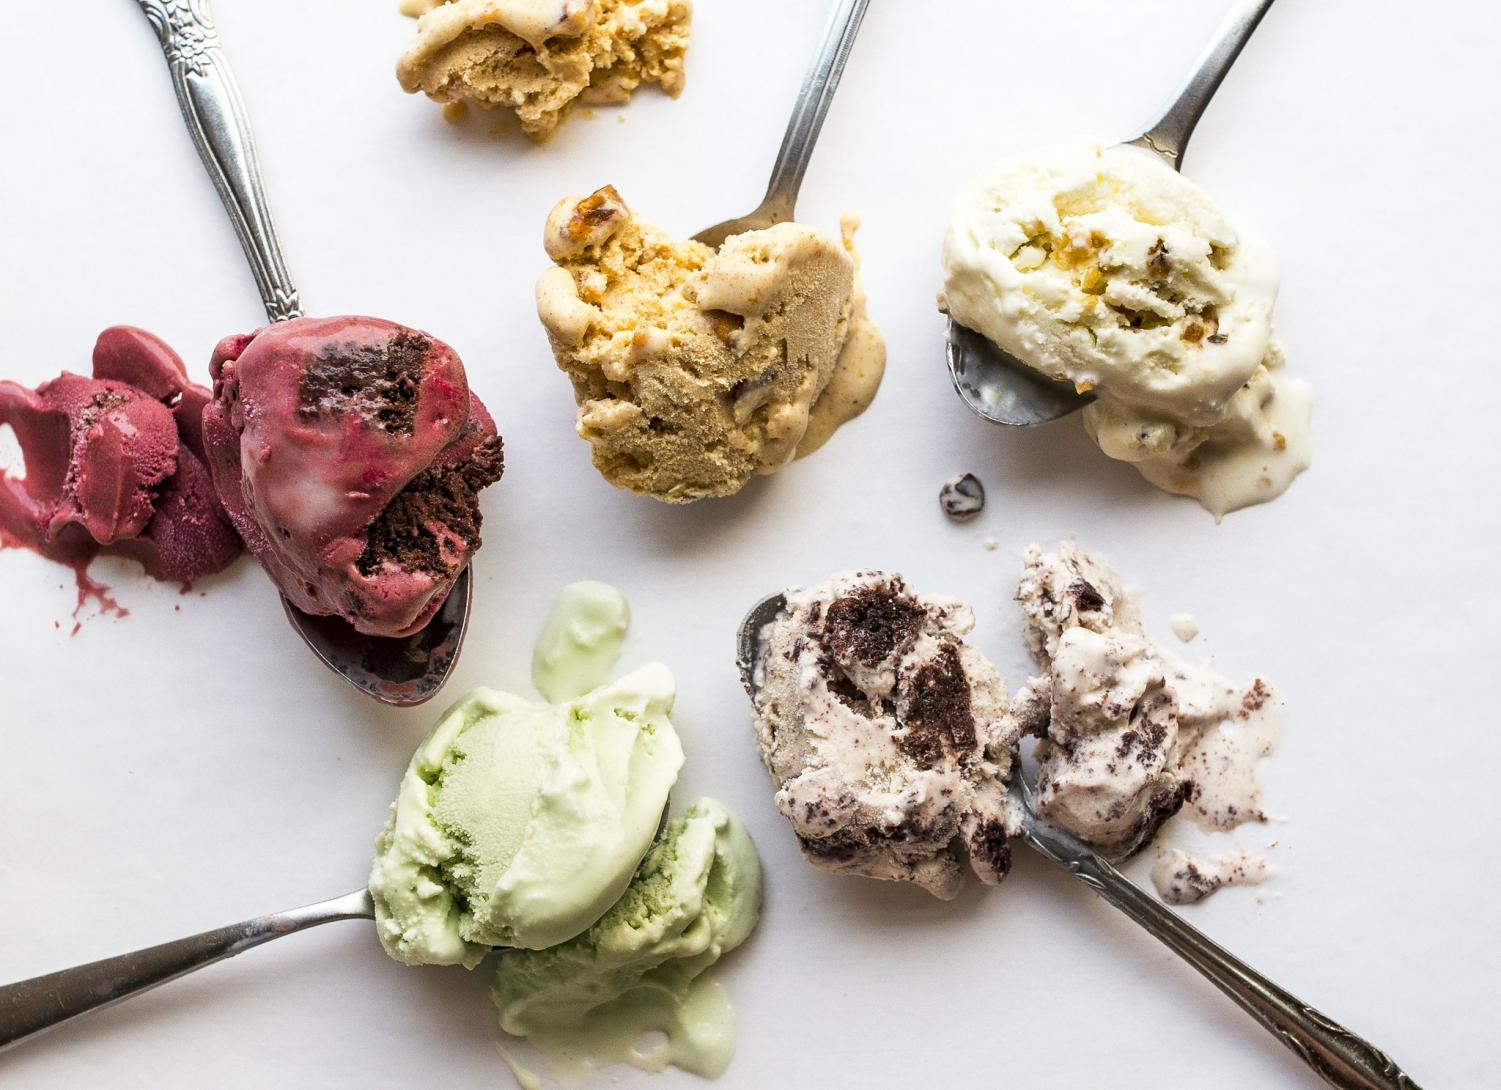 Salt & Straw features more than just your standard ice cream flavors.